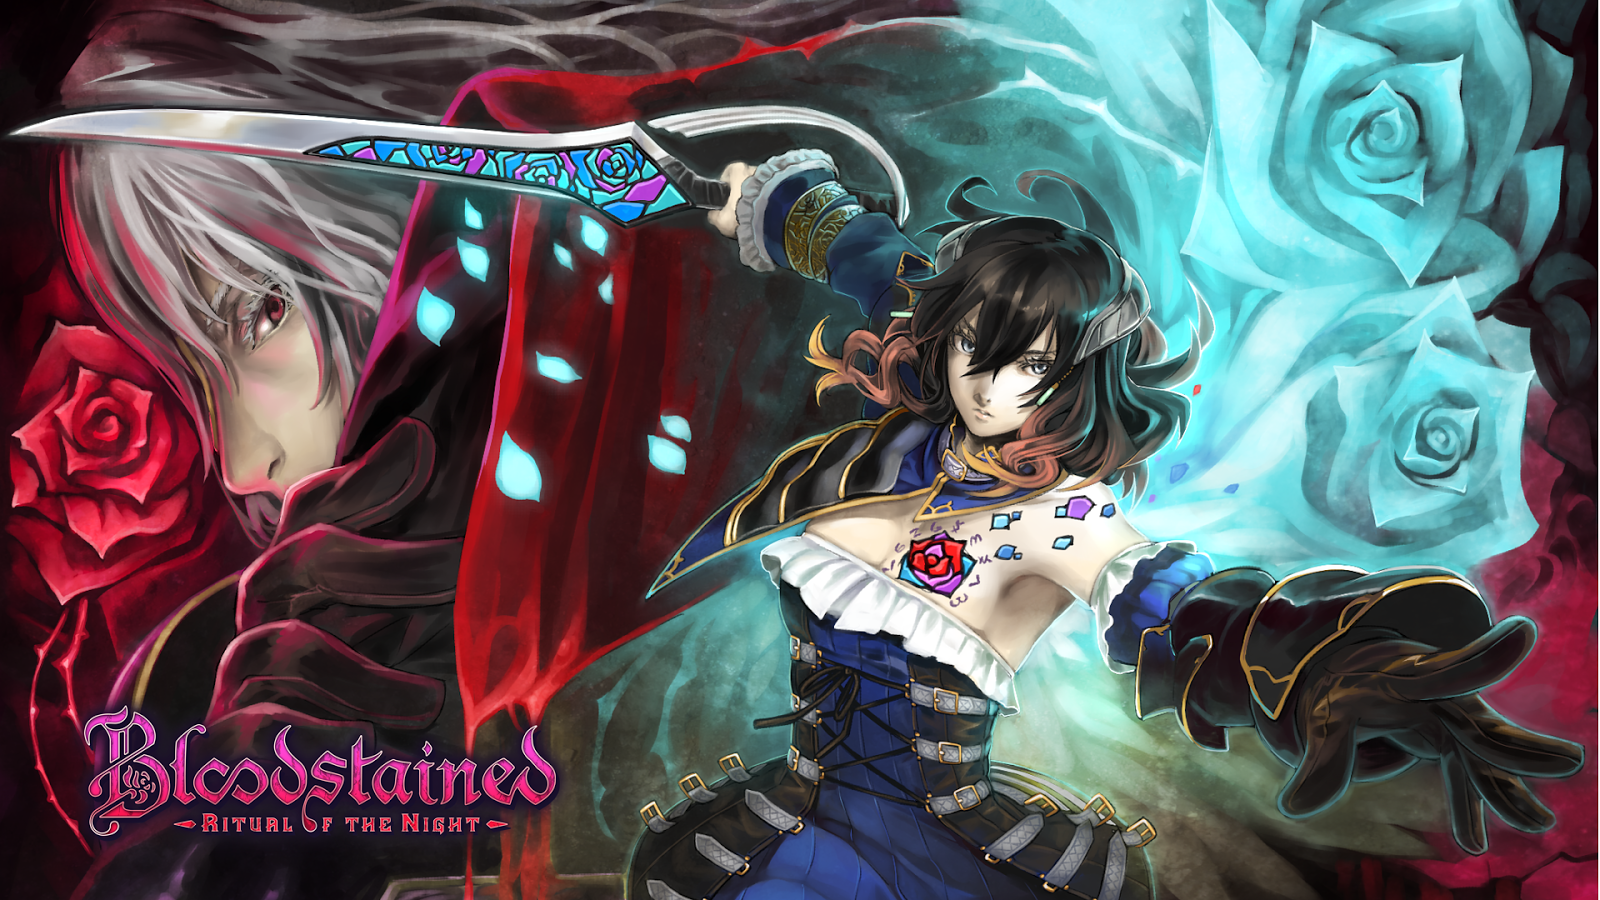 Bloodstained: Ritual of the Night | Trailer de lançamento revela Shovel Knight como personagem jogável